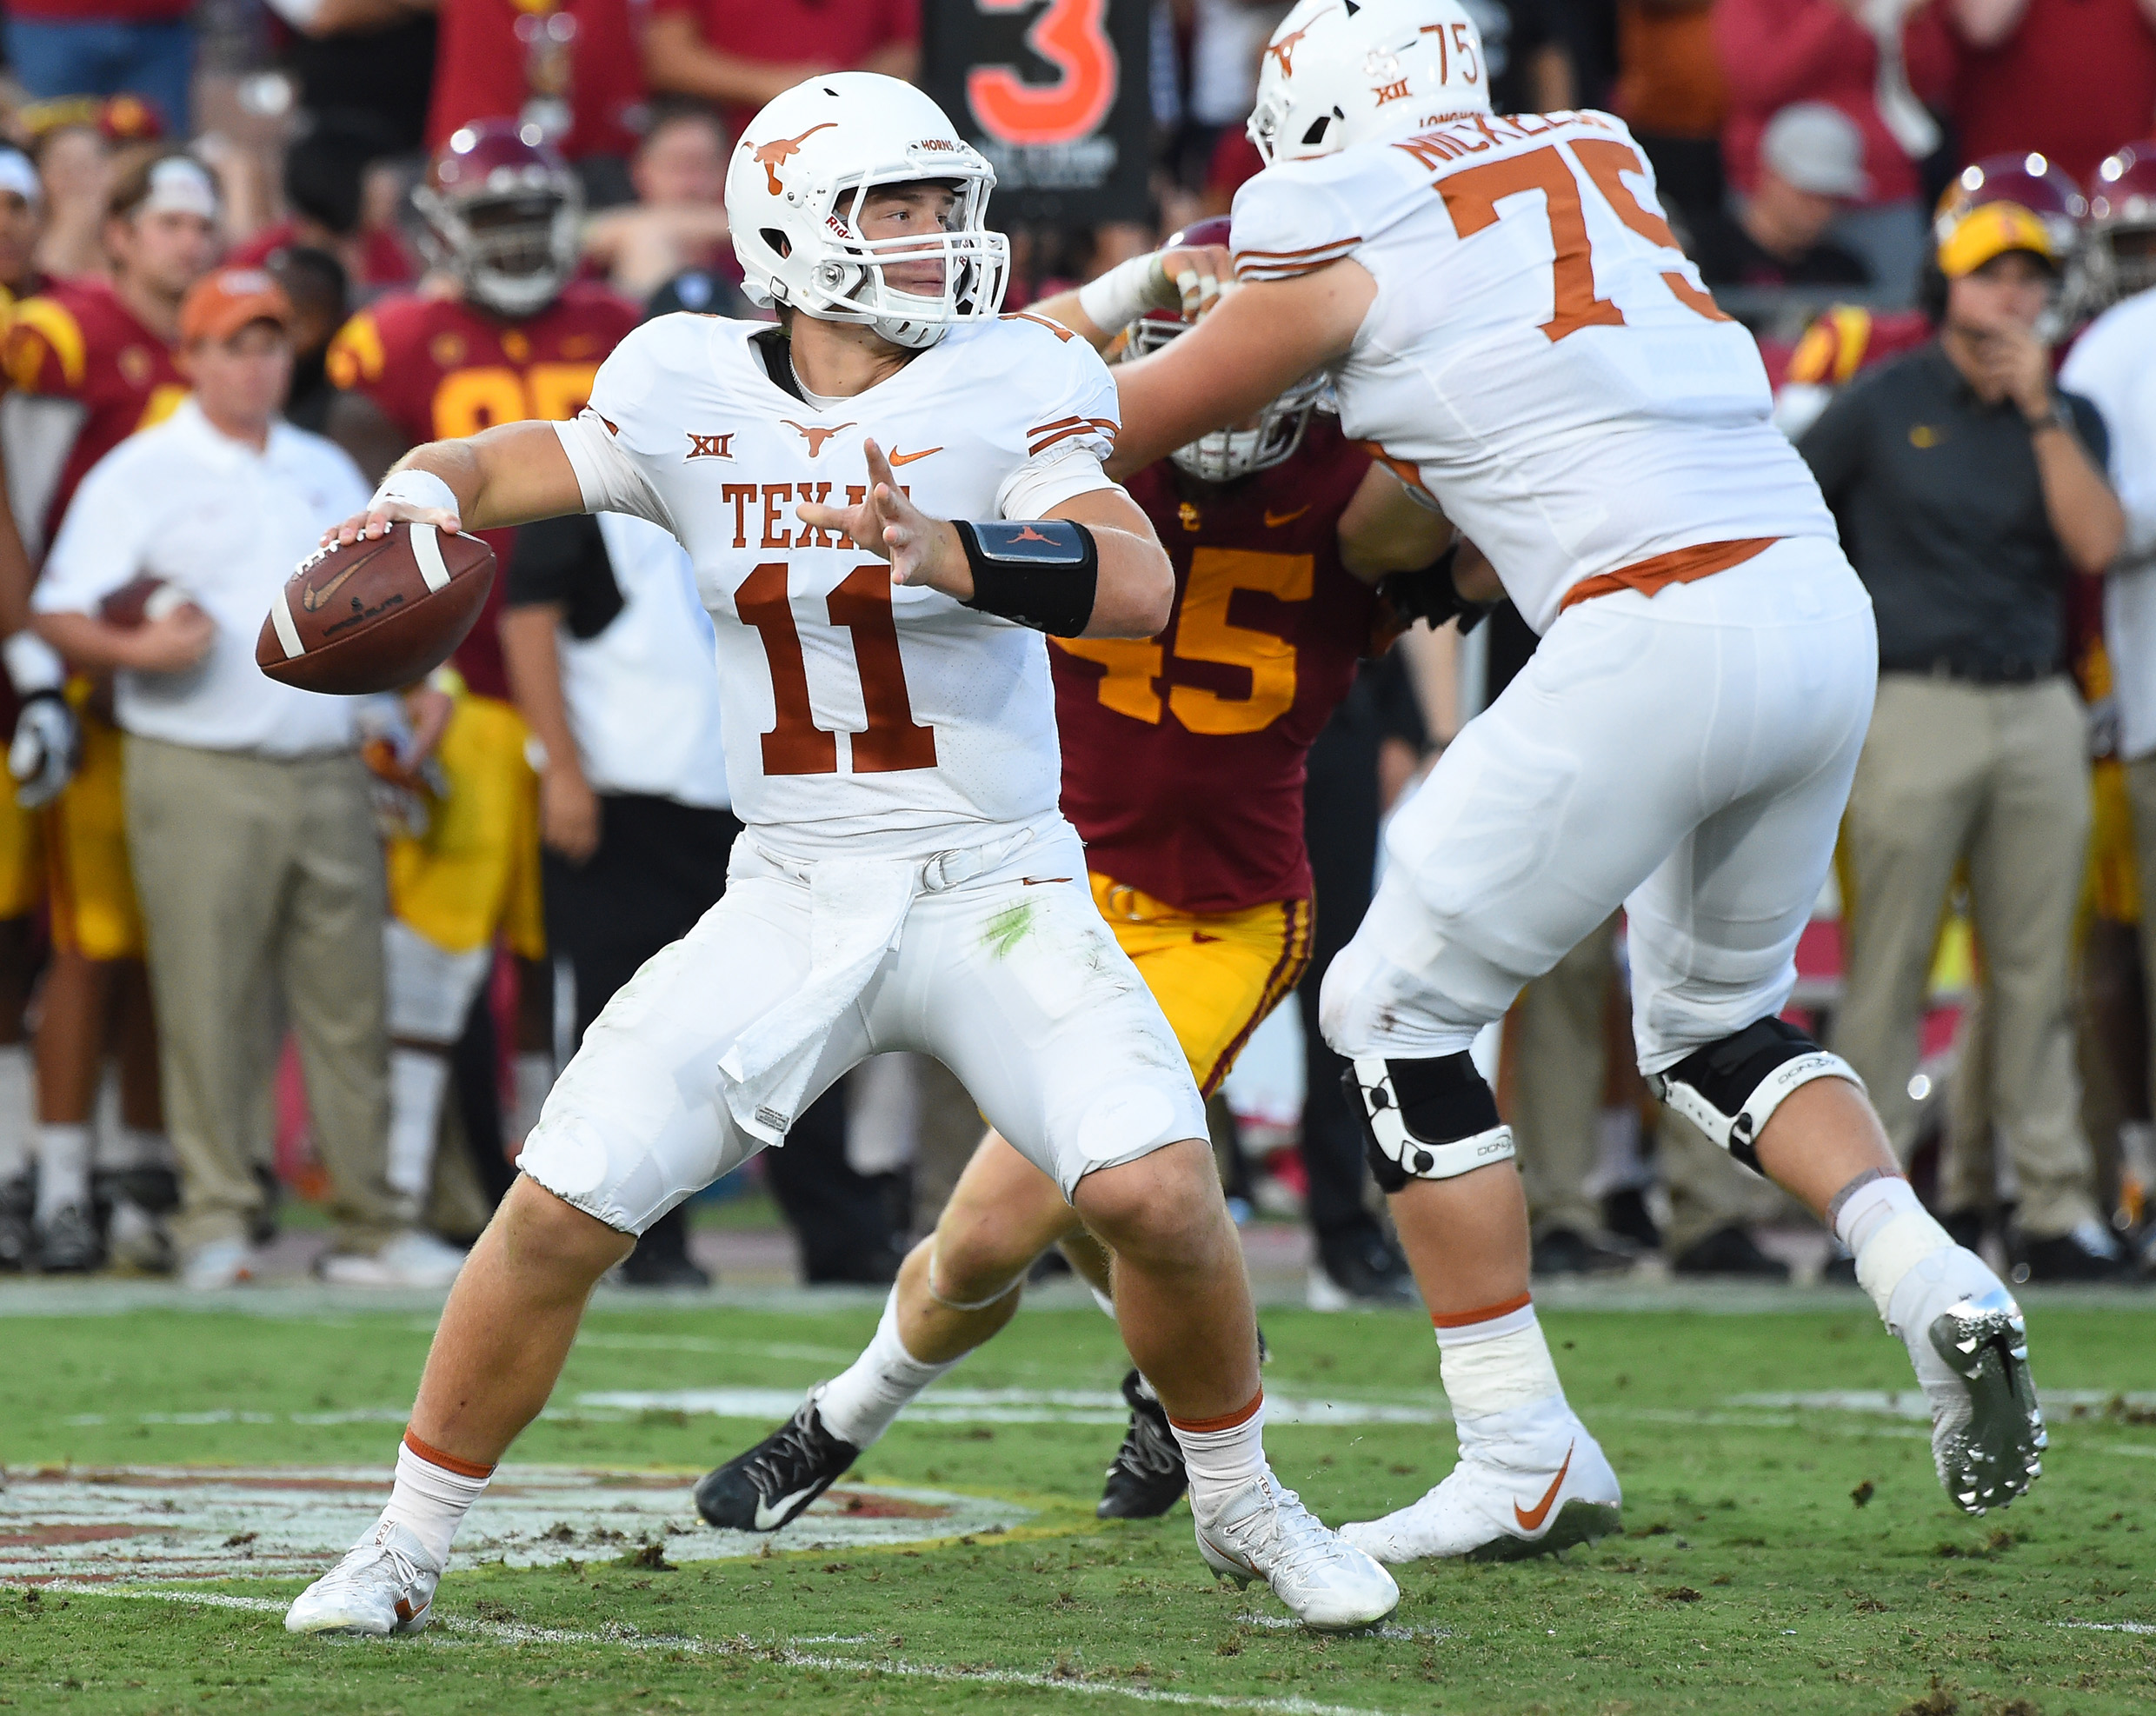 Sep 16, 2017; Los Angeles, CA, USA;   Texas Longhorns quarterback Sam Ehlinger (11) sets to pass in the second half of the game against the USC Trojans at Los Angeles Memorial Coliseum. Mandatory Credit: Jayne Kamin-Oncea-USA TODAY Sports